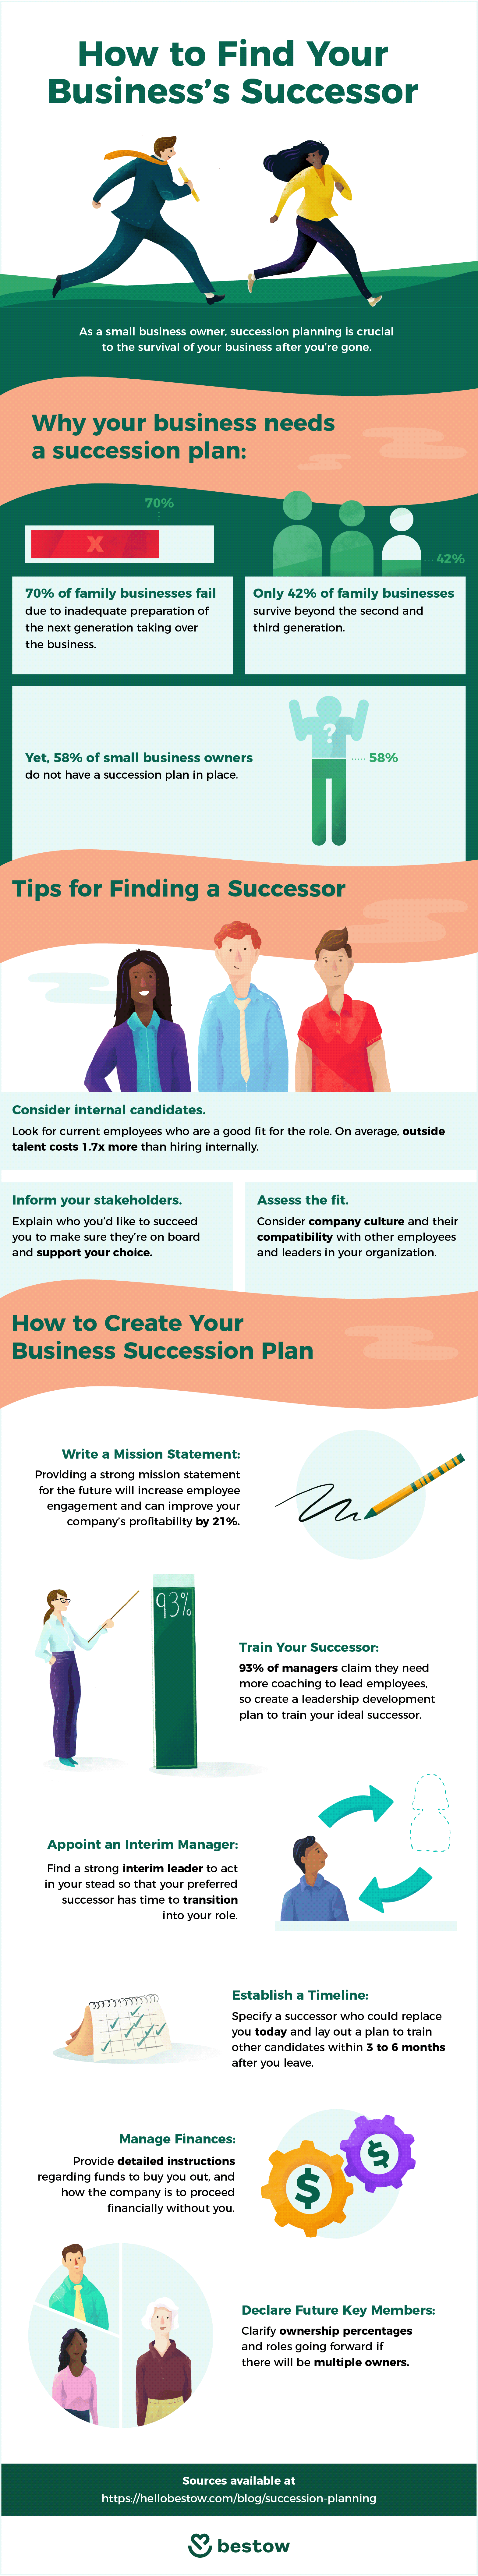 business-succession-infographic